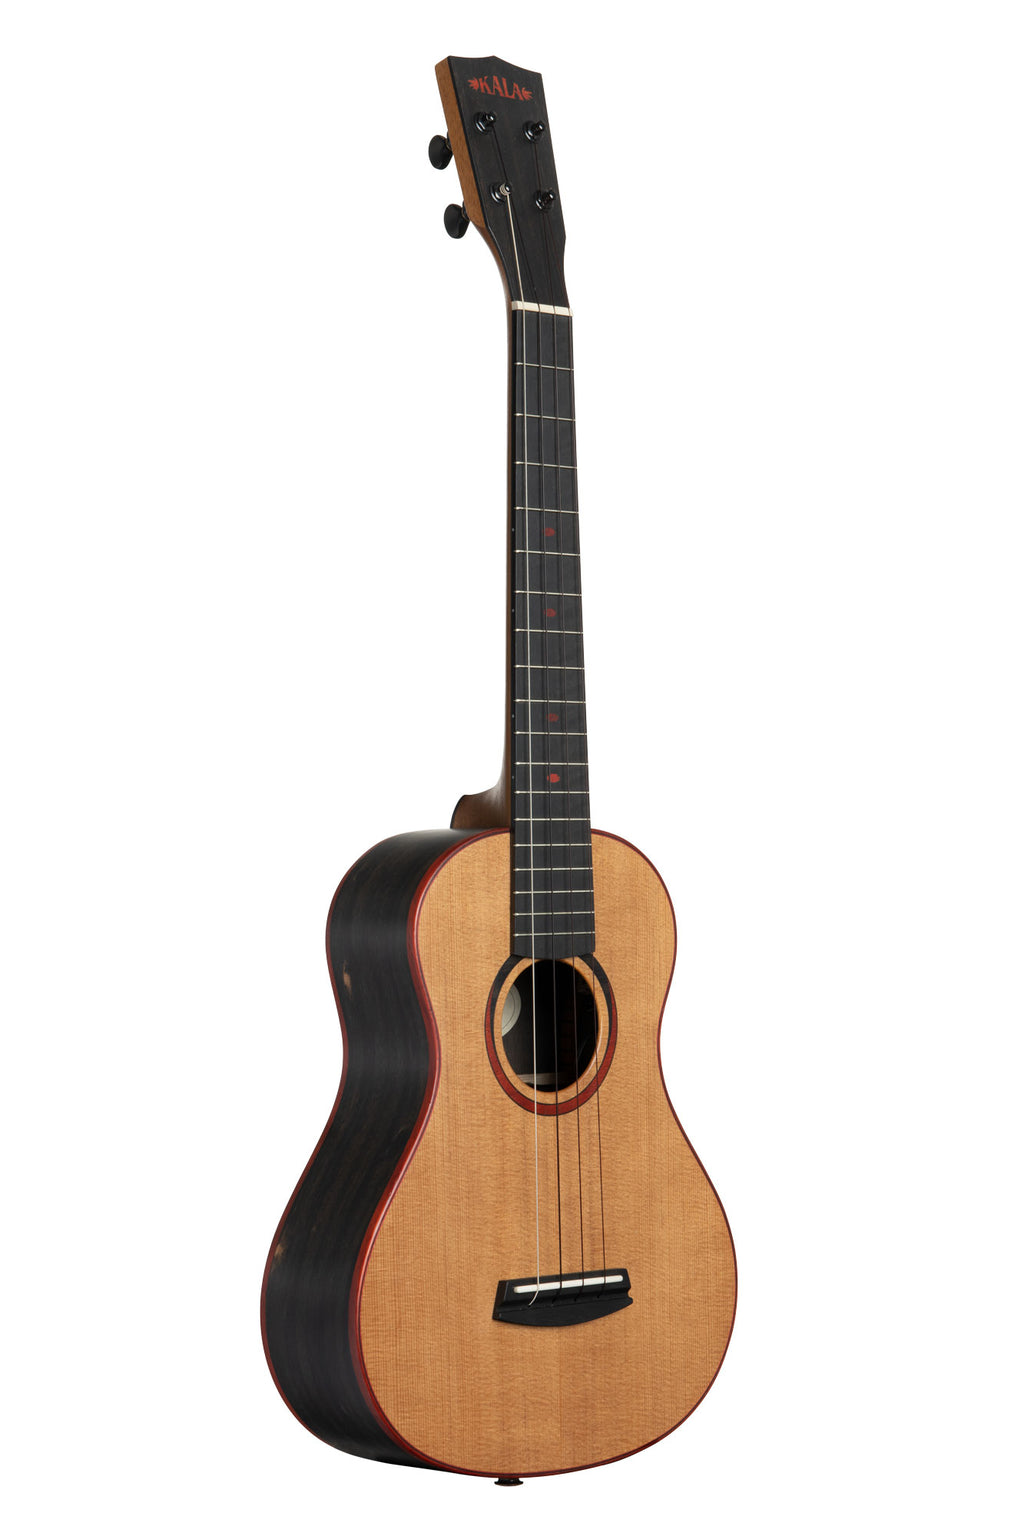 B-Stock: Torrefied Spruce Top Ebony Tenor XL Ukulele